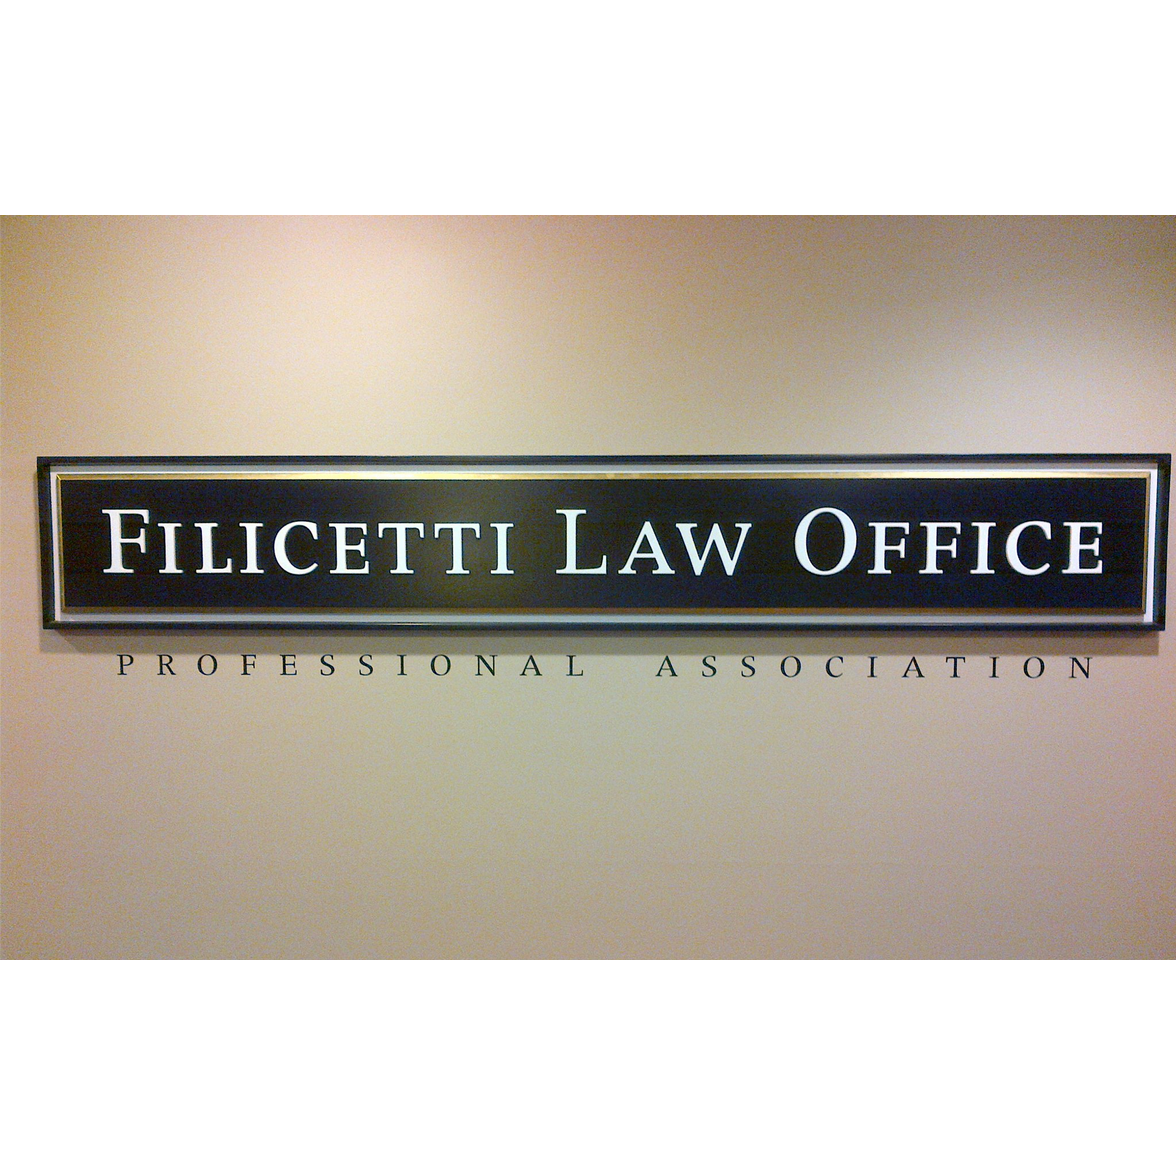 Filicetti Law Office P.A.